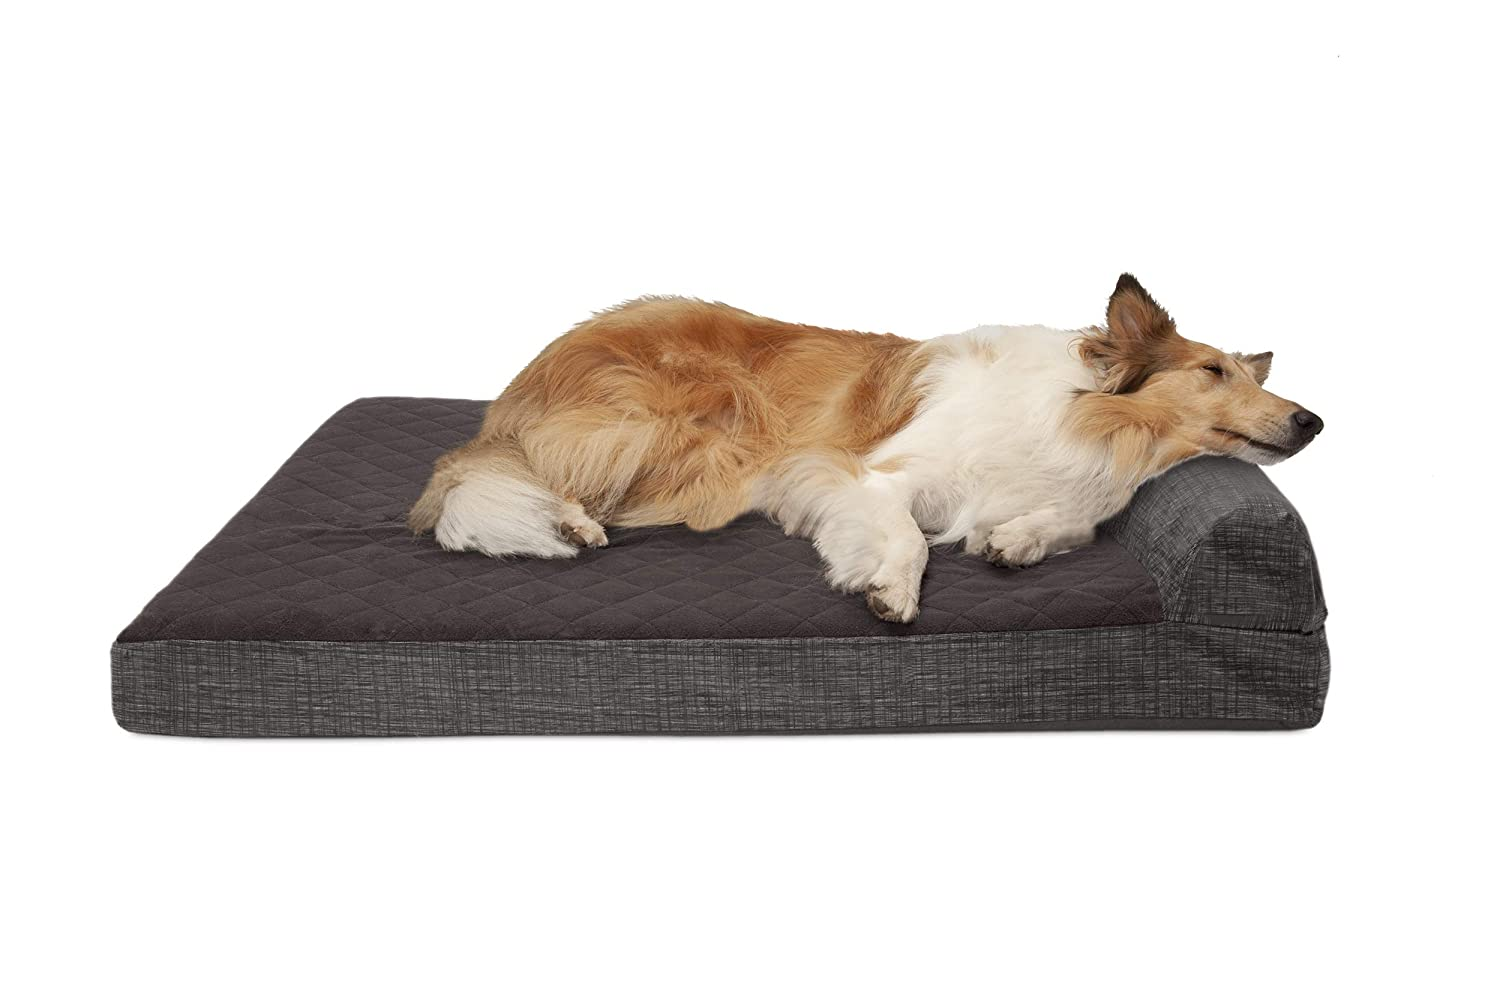 FurHaven Pet Dog Bed   Cooling Gel Memory Foam Orthopedic Quilted Fleece & Print Suede Lounge Pet Bed for Dogs & Cats, Espresso, Jumbo